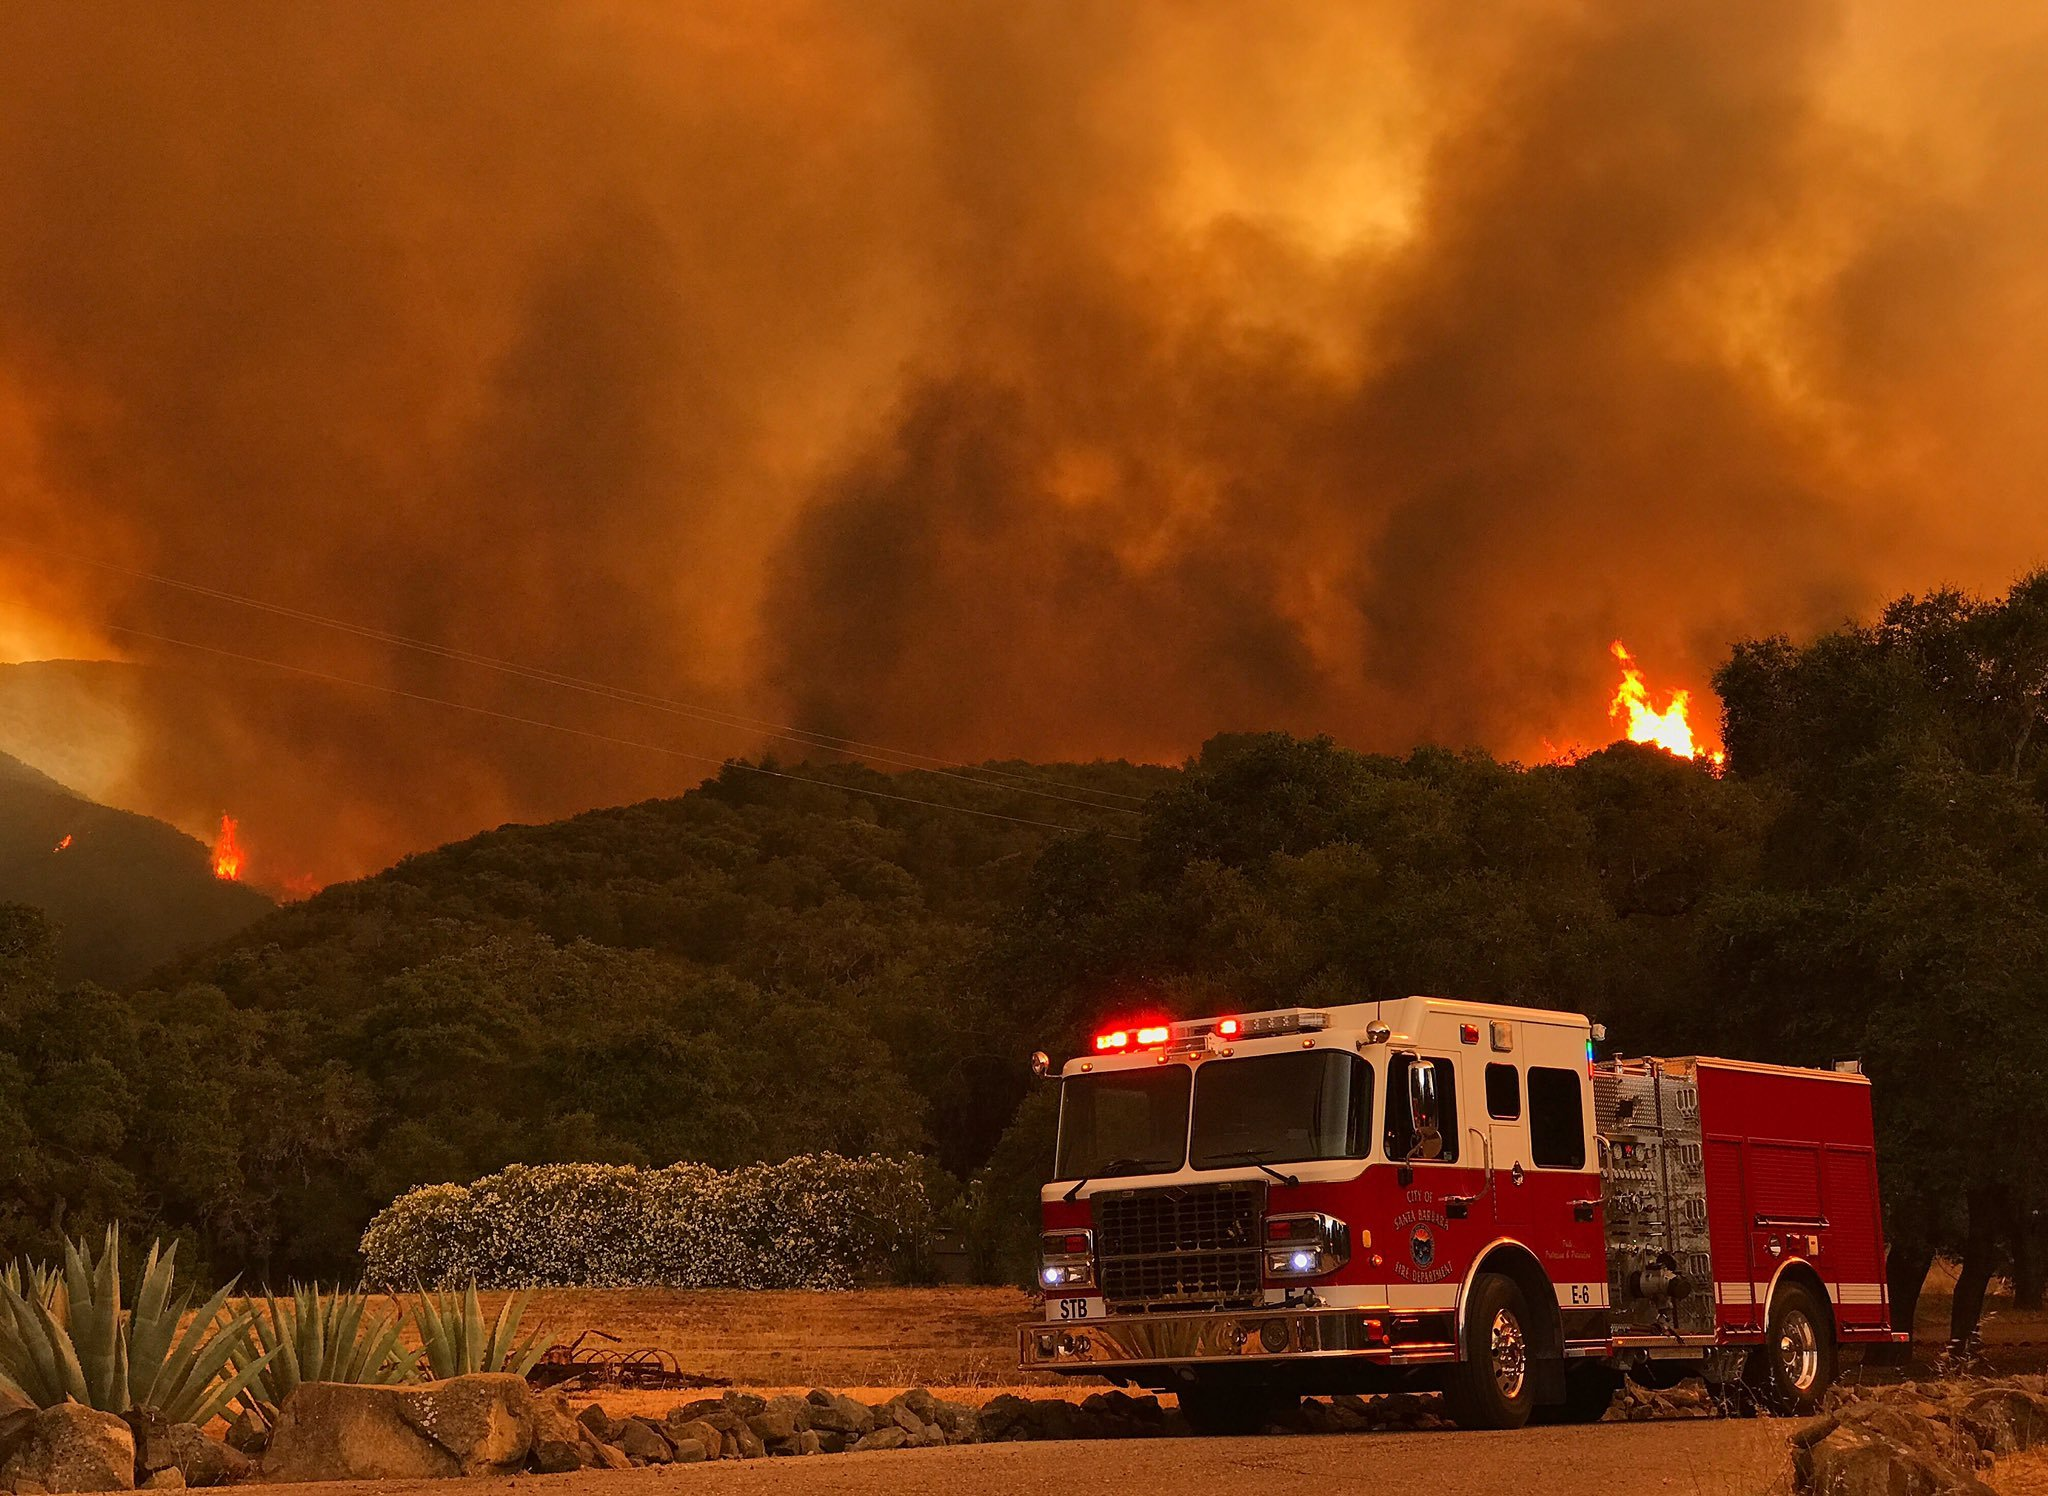 Photo courtesy Mike Eliason/Santa Barbara Co. Fire Dept.